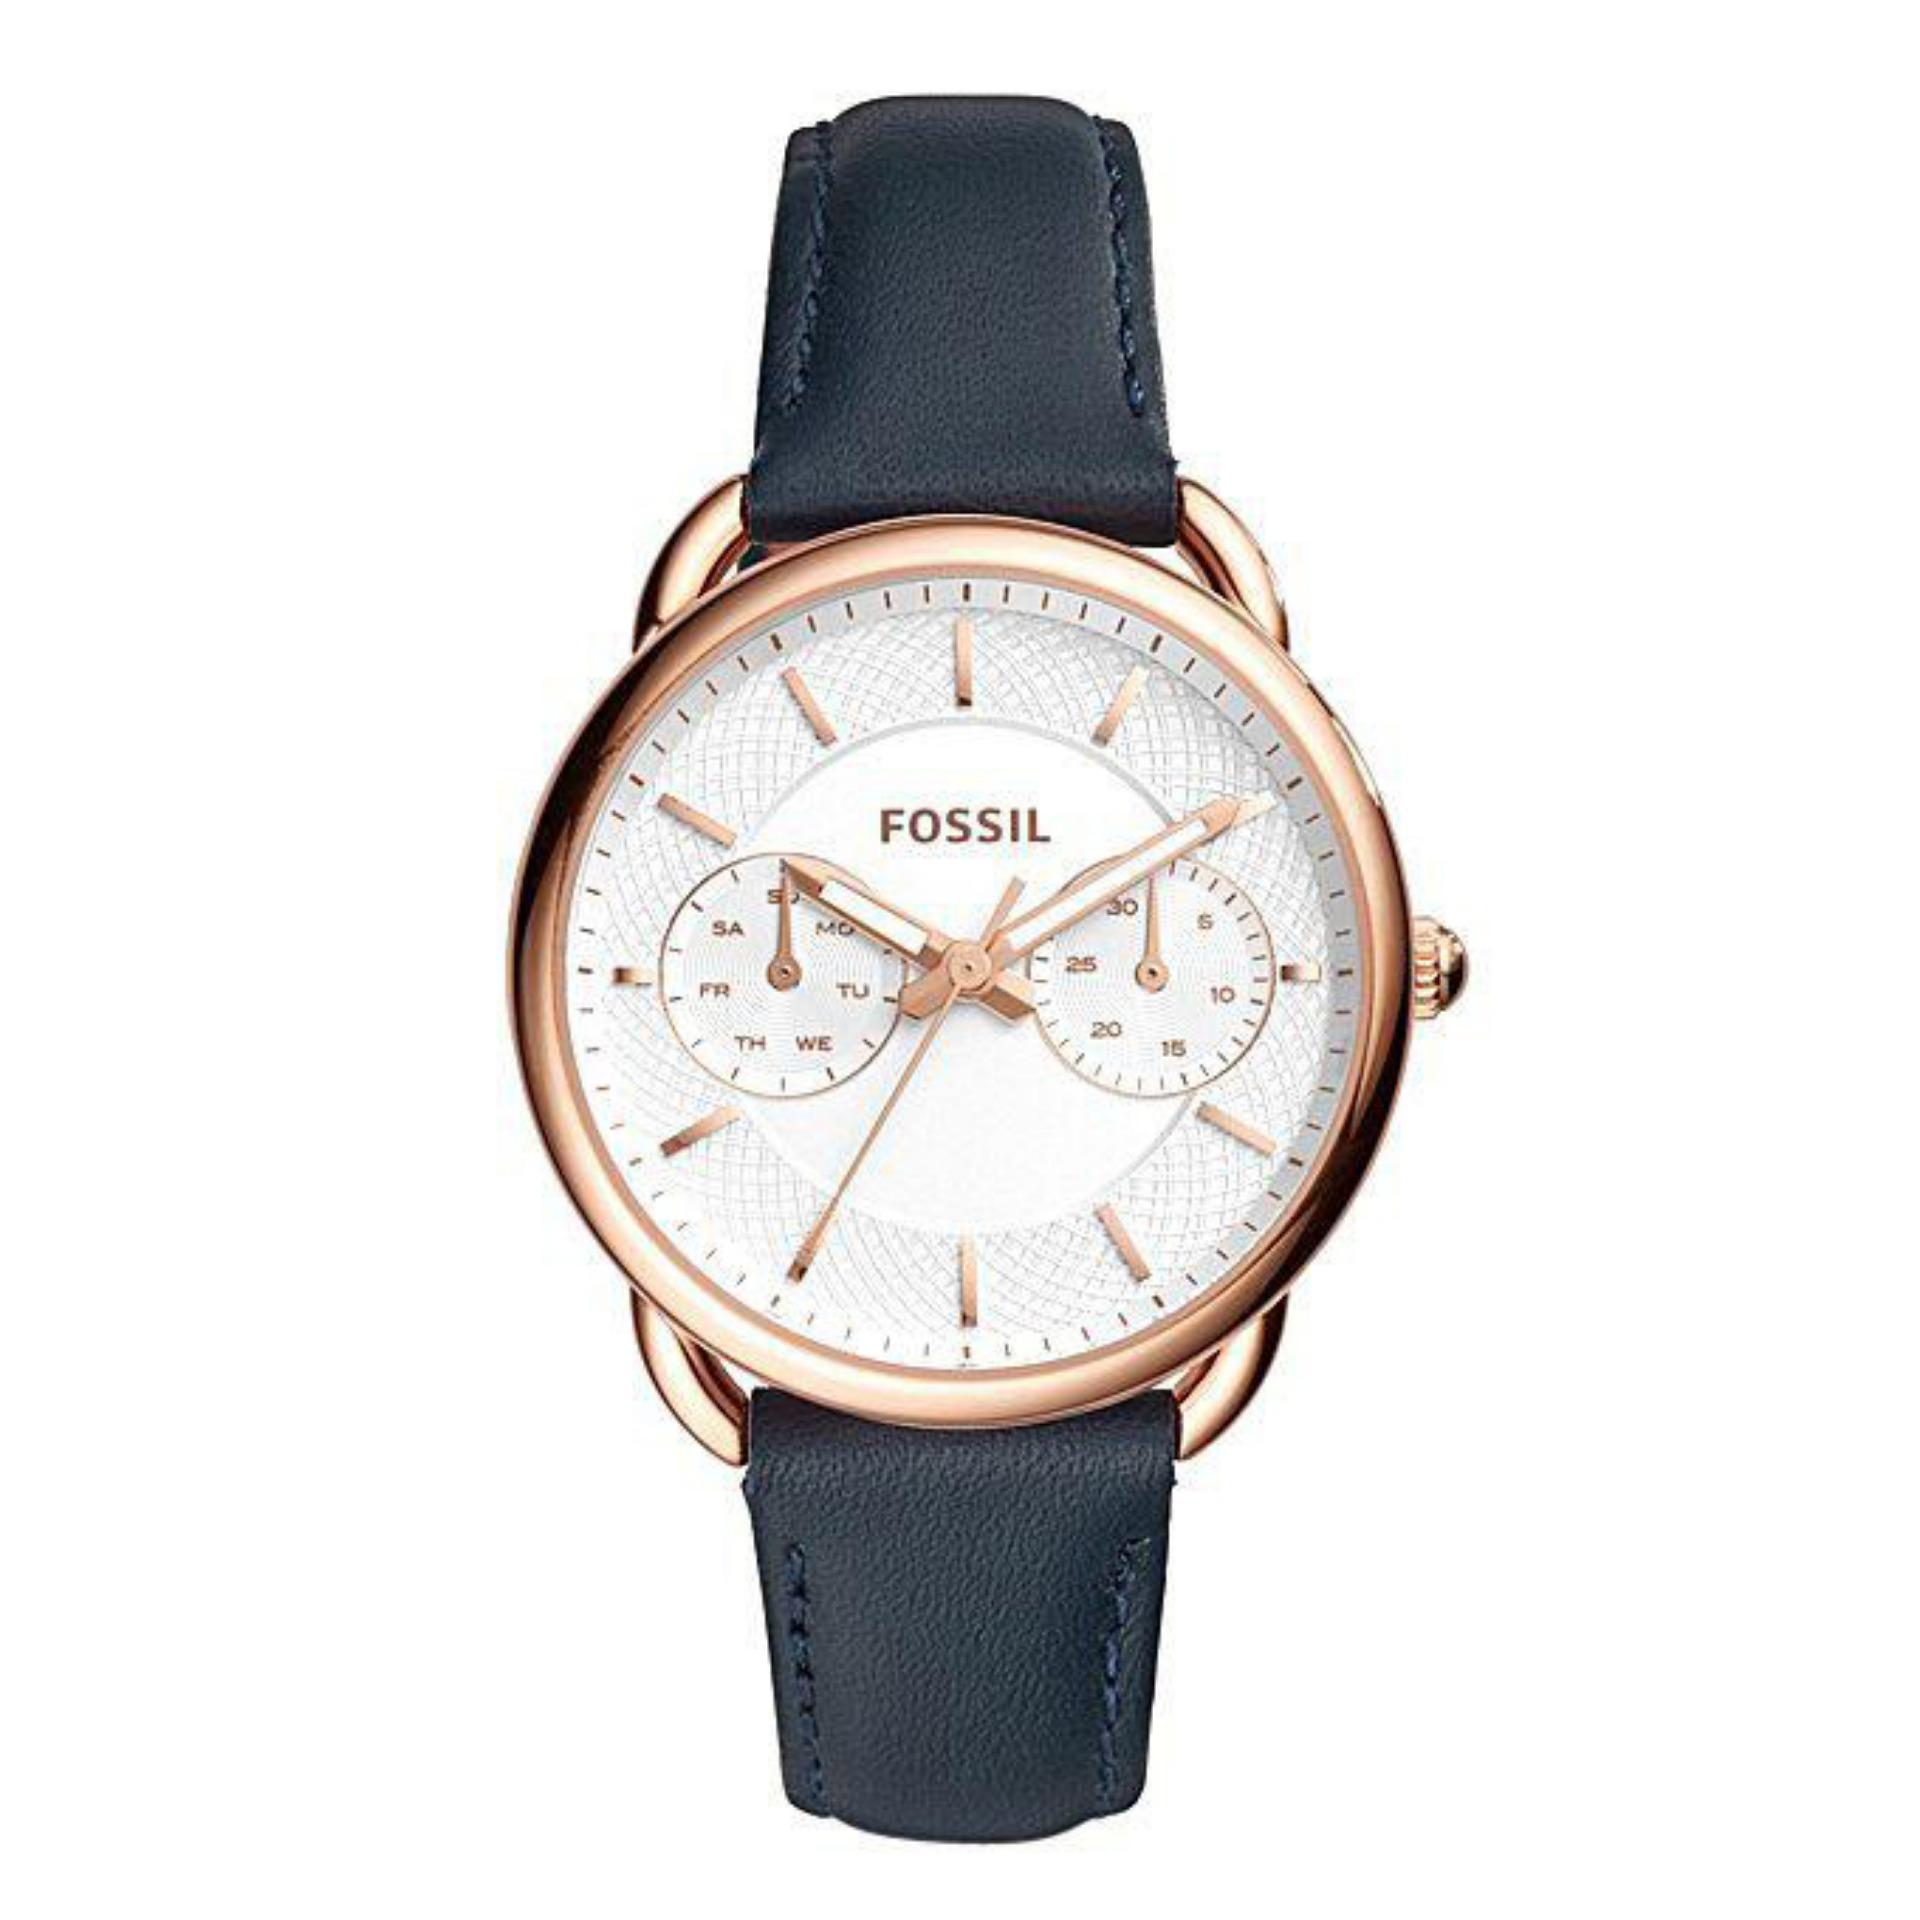 Fossil Online Store In Bangladesh Ch2869 Es4260 Leather Chronograph Watch For Women Navy Blue